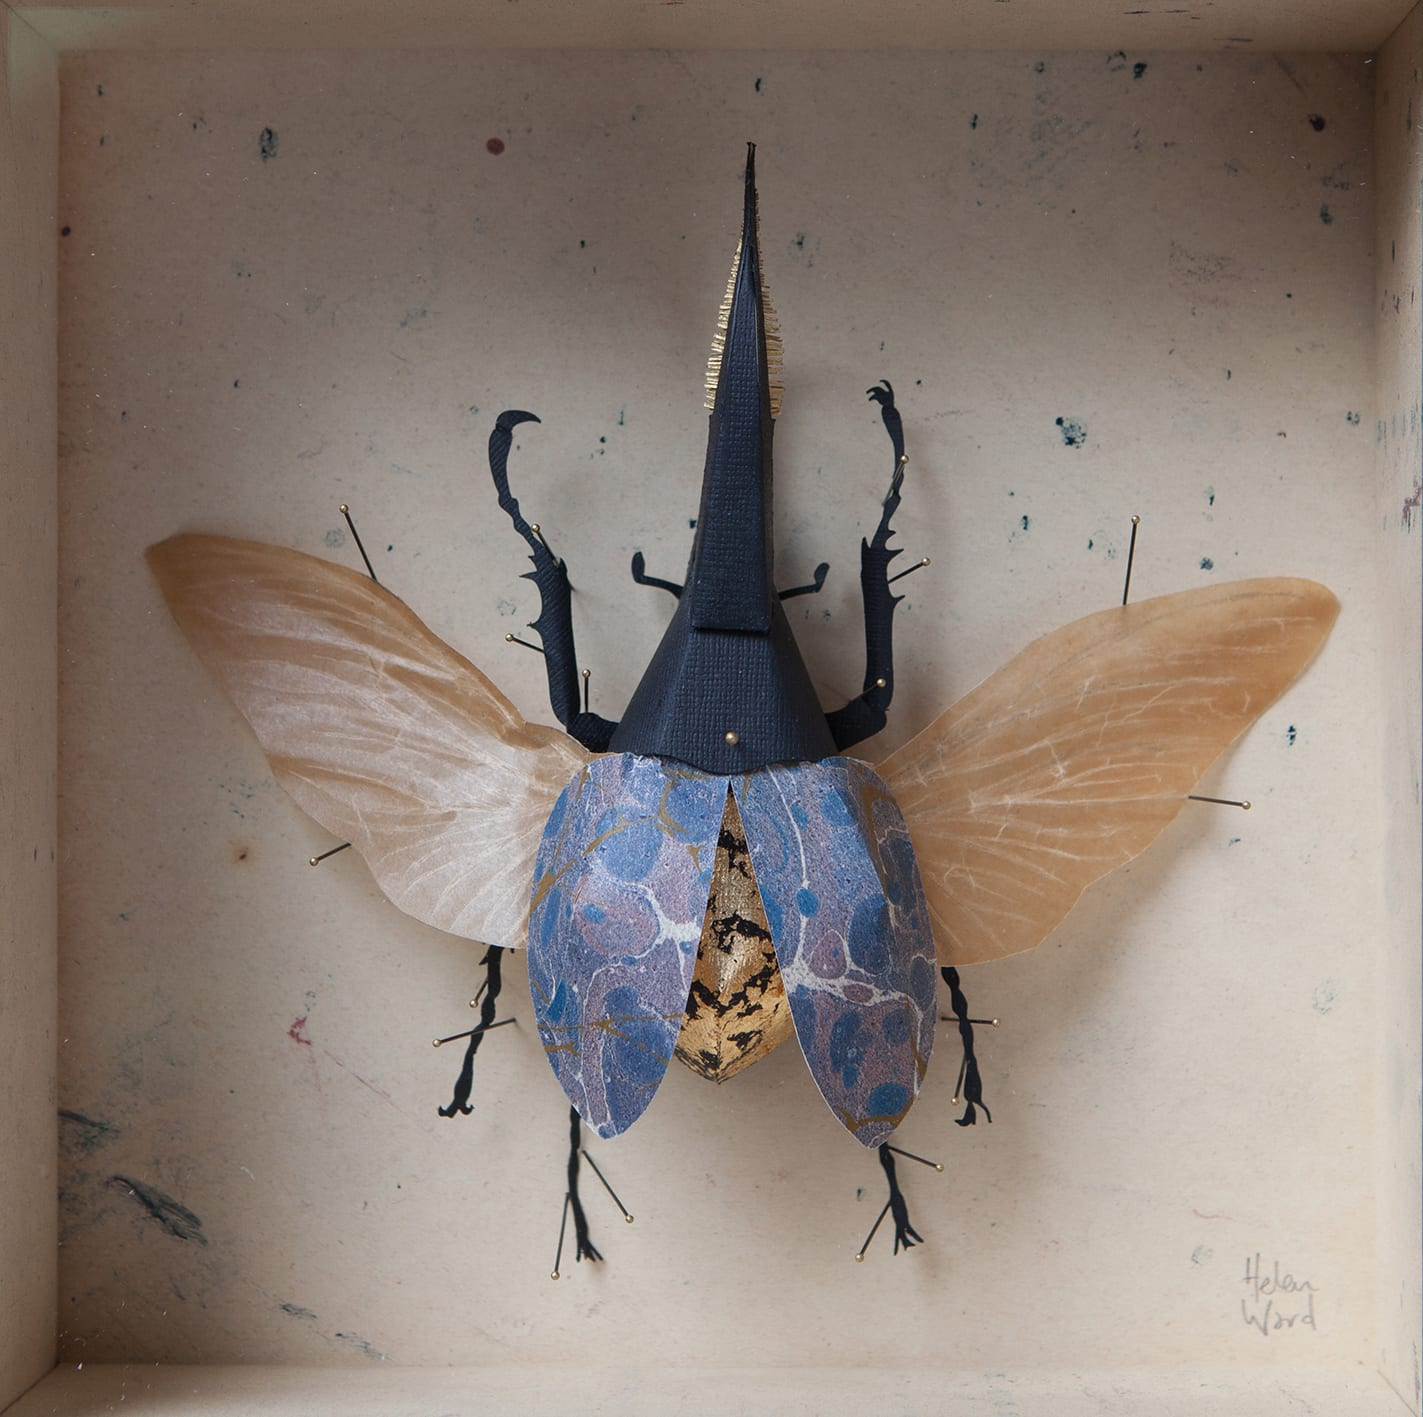 "<span class=""link fancybox-details-link""><a href=""/artists/142-helen-ward/works/6229-helen-ward-blue-hercules-beetle-2019/"">View Detail Page</a></span><div class=""artist""><strong>Helen Ward</strong></div> <div class=""title""><em>Blue Hercules Beetle</em>, 2019</div> <div class=""medium"">paper, Victorian hand-marbled papers, gold leaf, enamel pins</div> <div class=""dimensions"">20 x 20 cm</div><div class=""price"">£380.00</div><div class=""copyright_line"">Own Art: £ 38 x 10 Monthly 0% APR Representative Payments</div>"